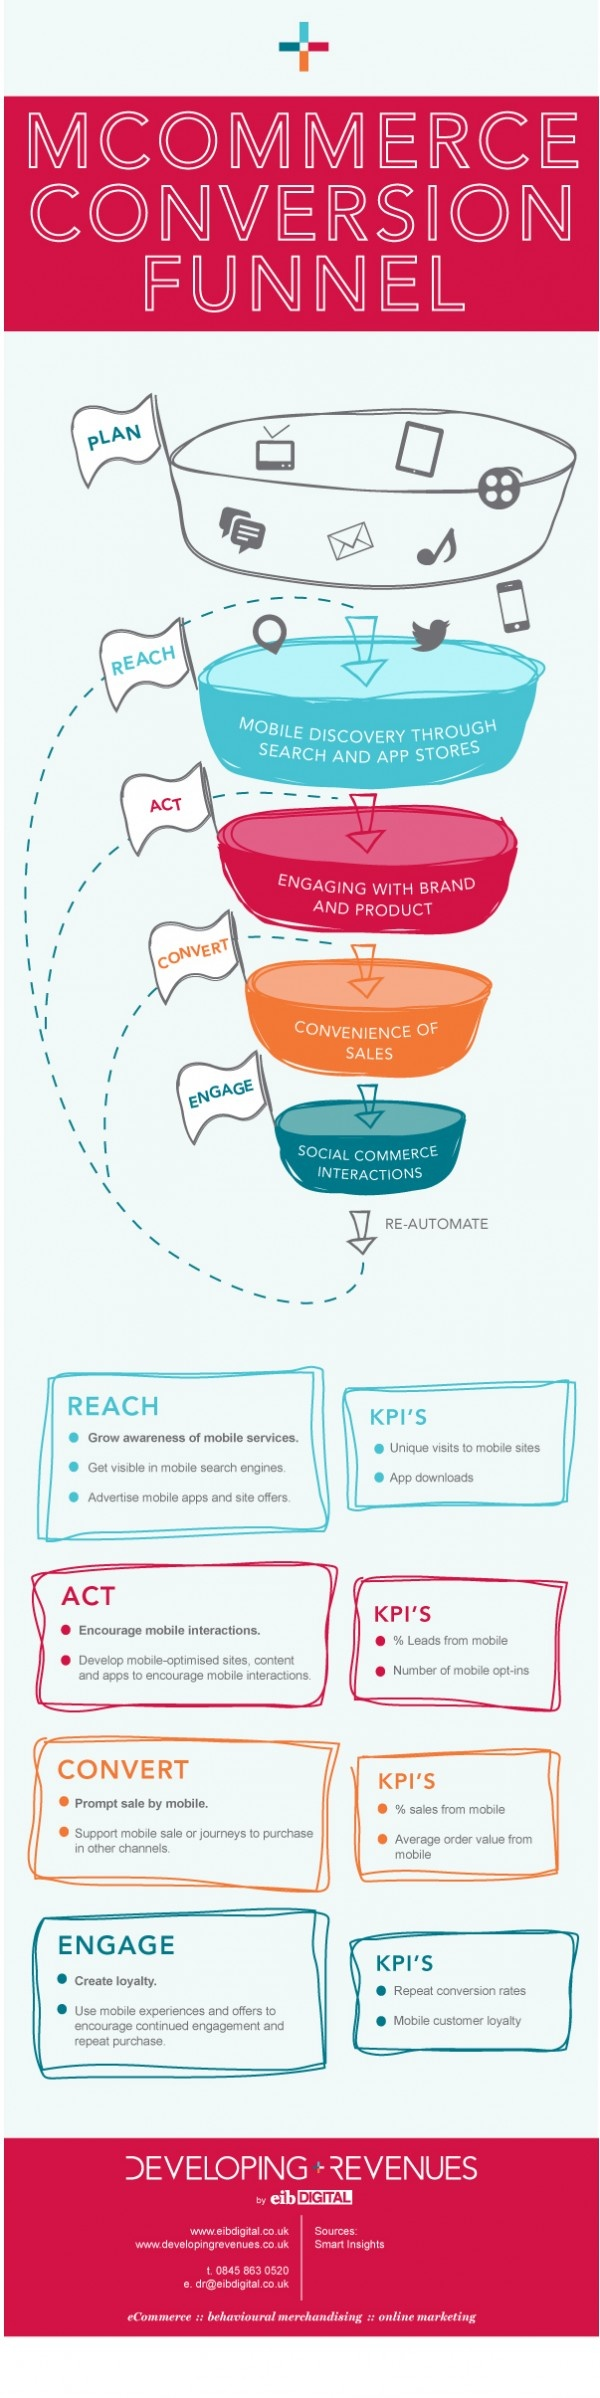 Race Funnel | Developing Revenues - eCommerce guides and infographics